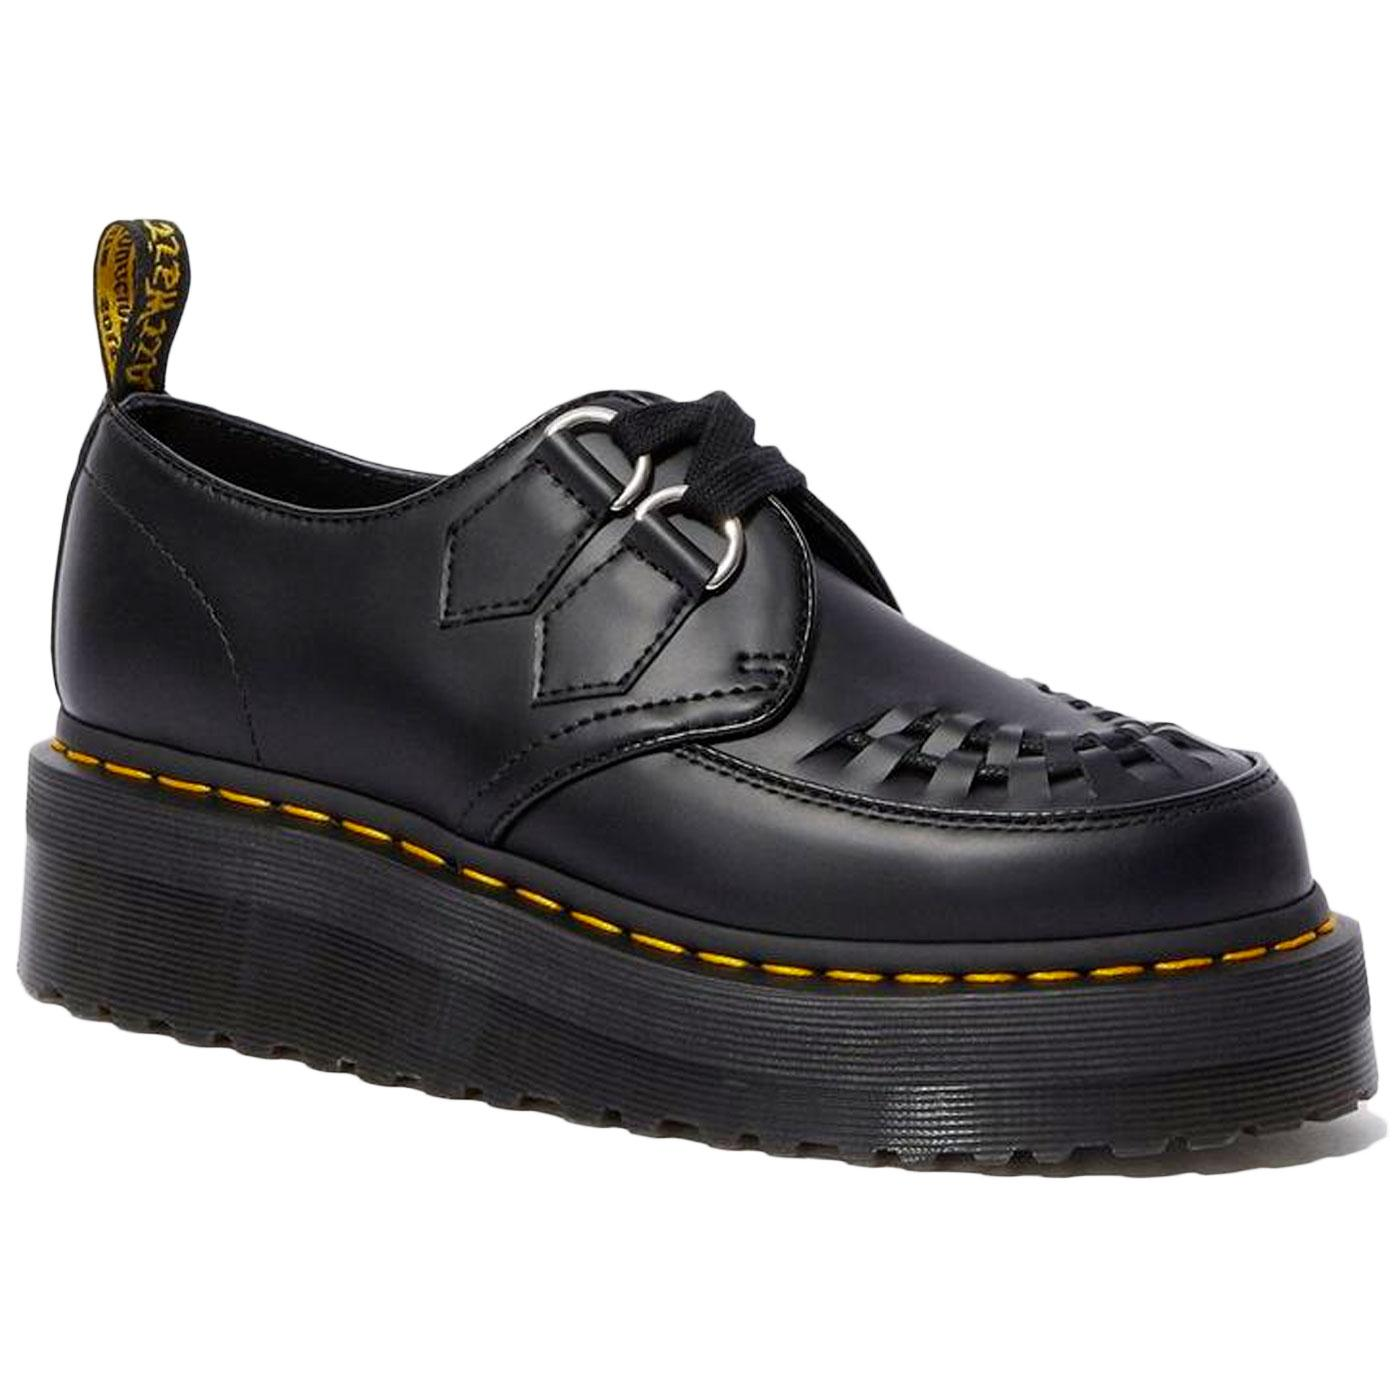 Sidney DR MARTENS Smooth Leather Platform Creepers